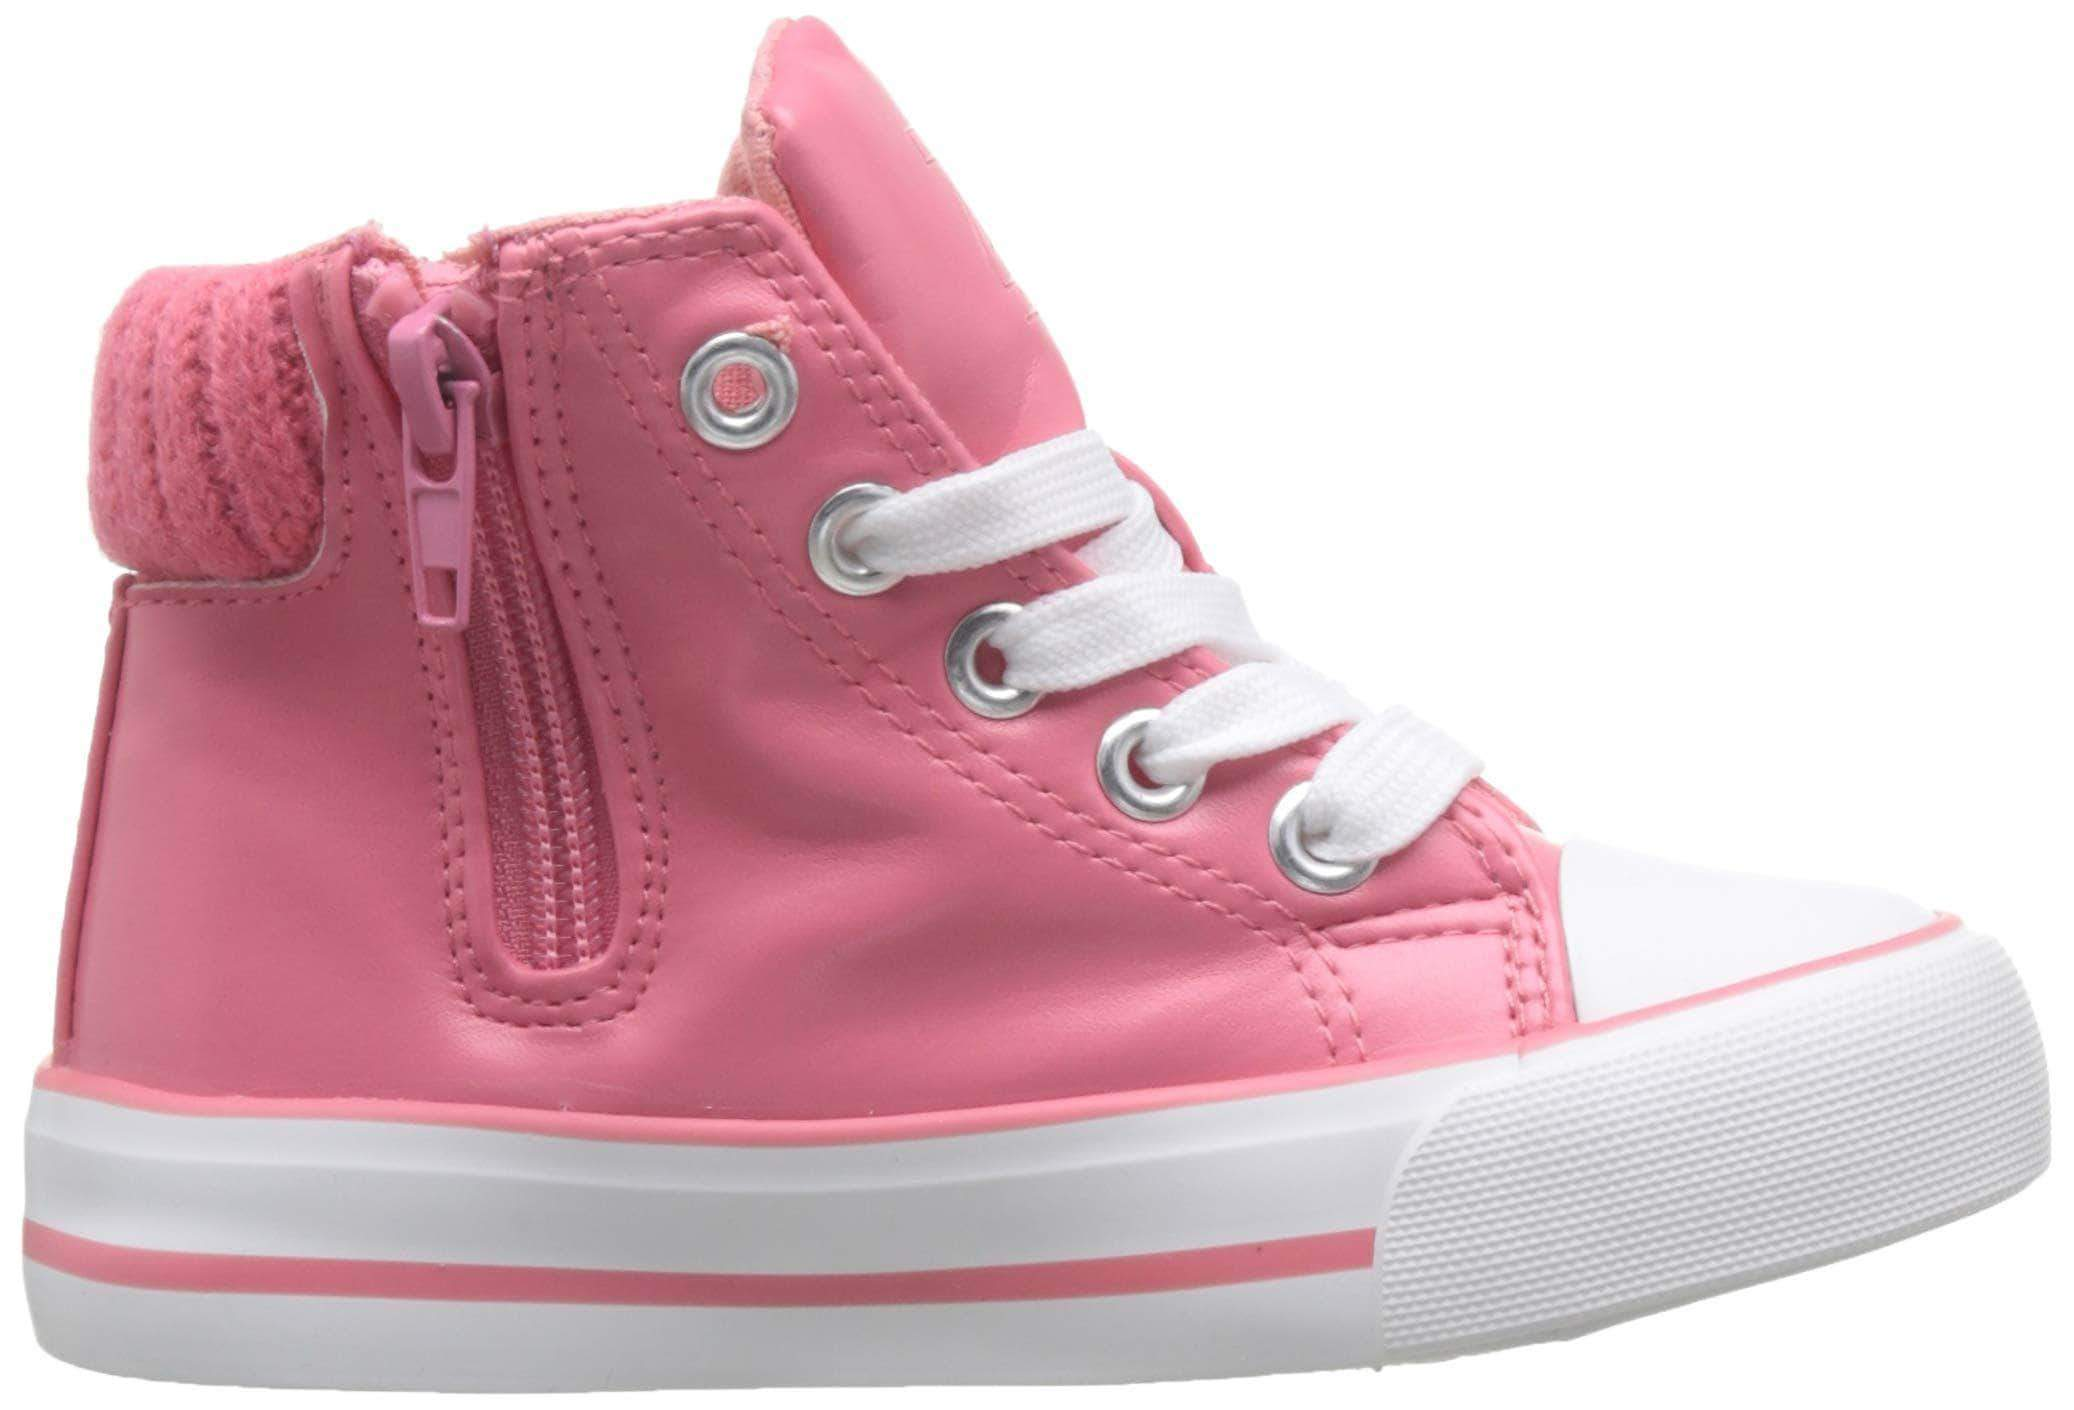 Amazon Zippy Zapatillas De Caña Alta, Altas para Niñas, Rosa (Bubblegum 17-1928 TC 517), 27 EU